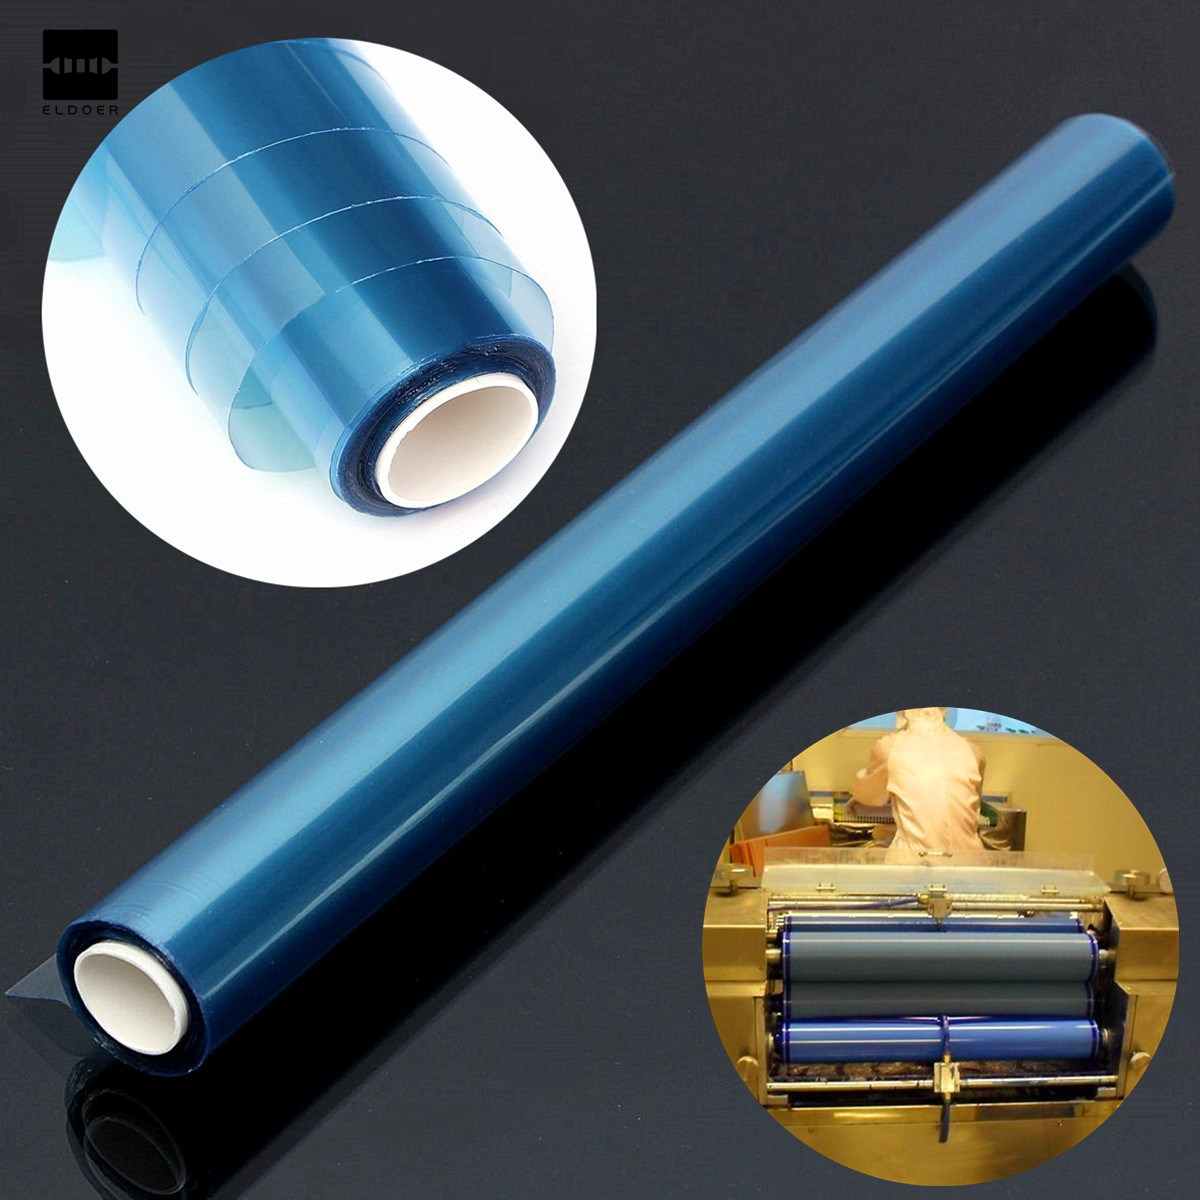 PCB Hot Sale Portable Photosensitive Dry Film for Circuit Production Photoresist Sheets 30cm x 5m Electronic Components